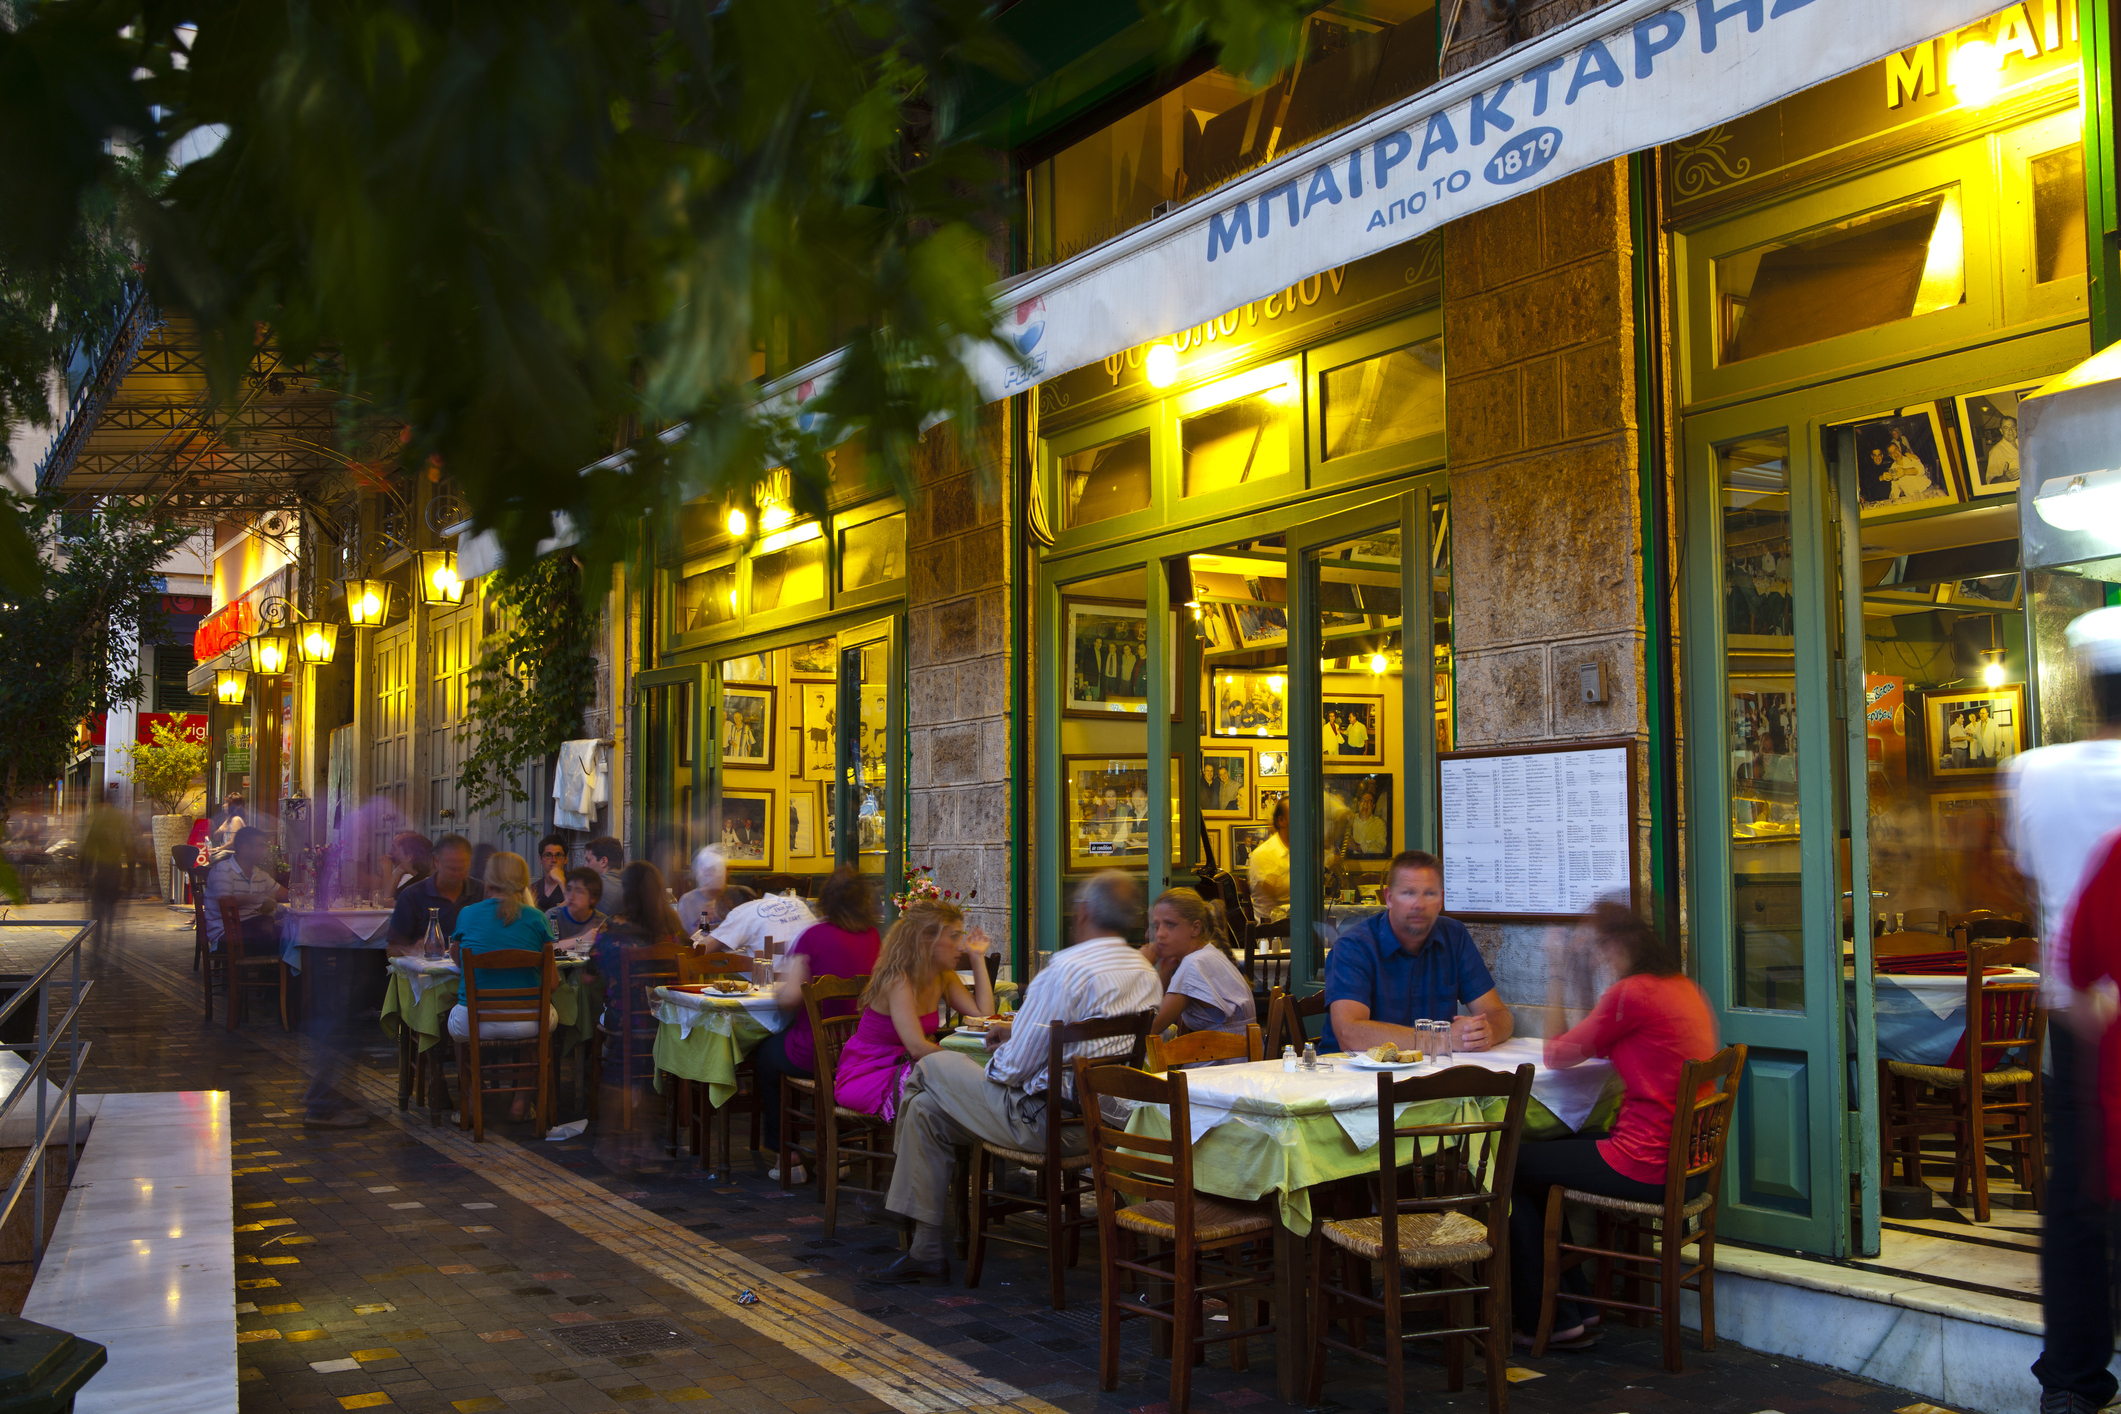 Tourists to Athens in Greece now have over 200 walking tours to introduce them to the city